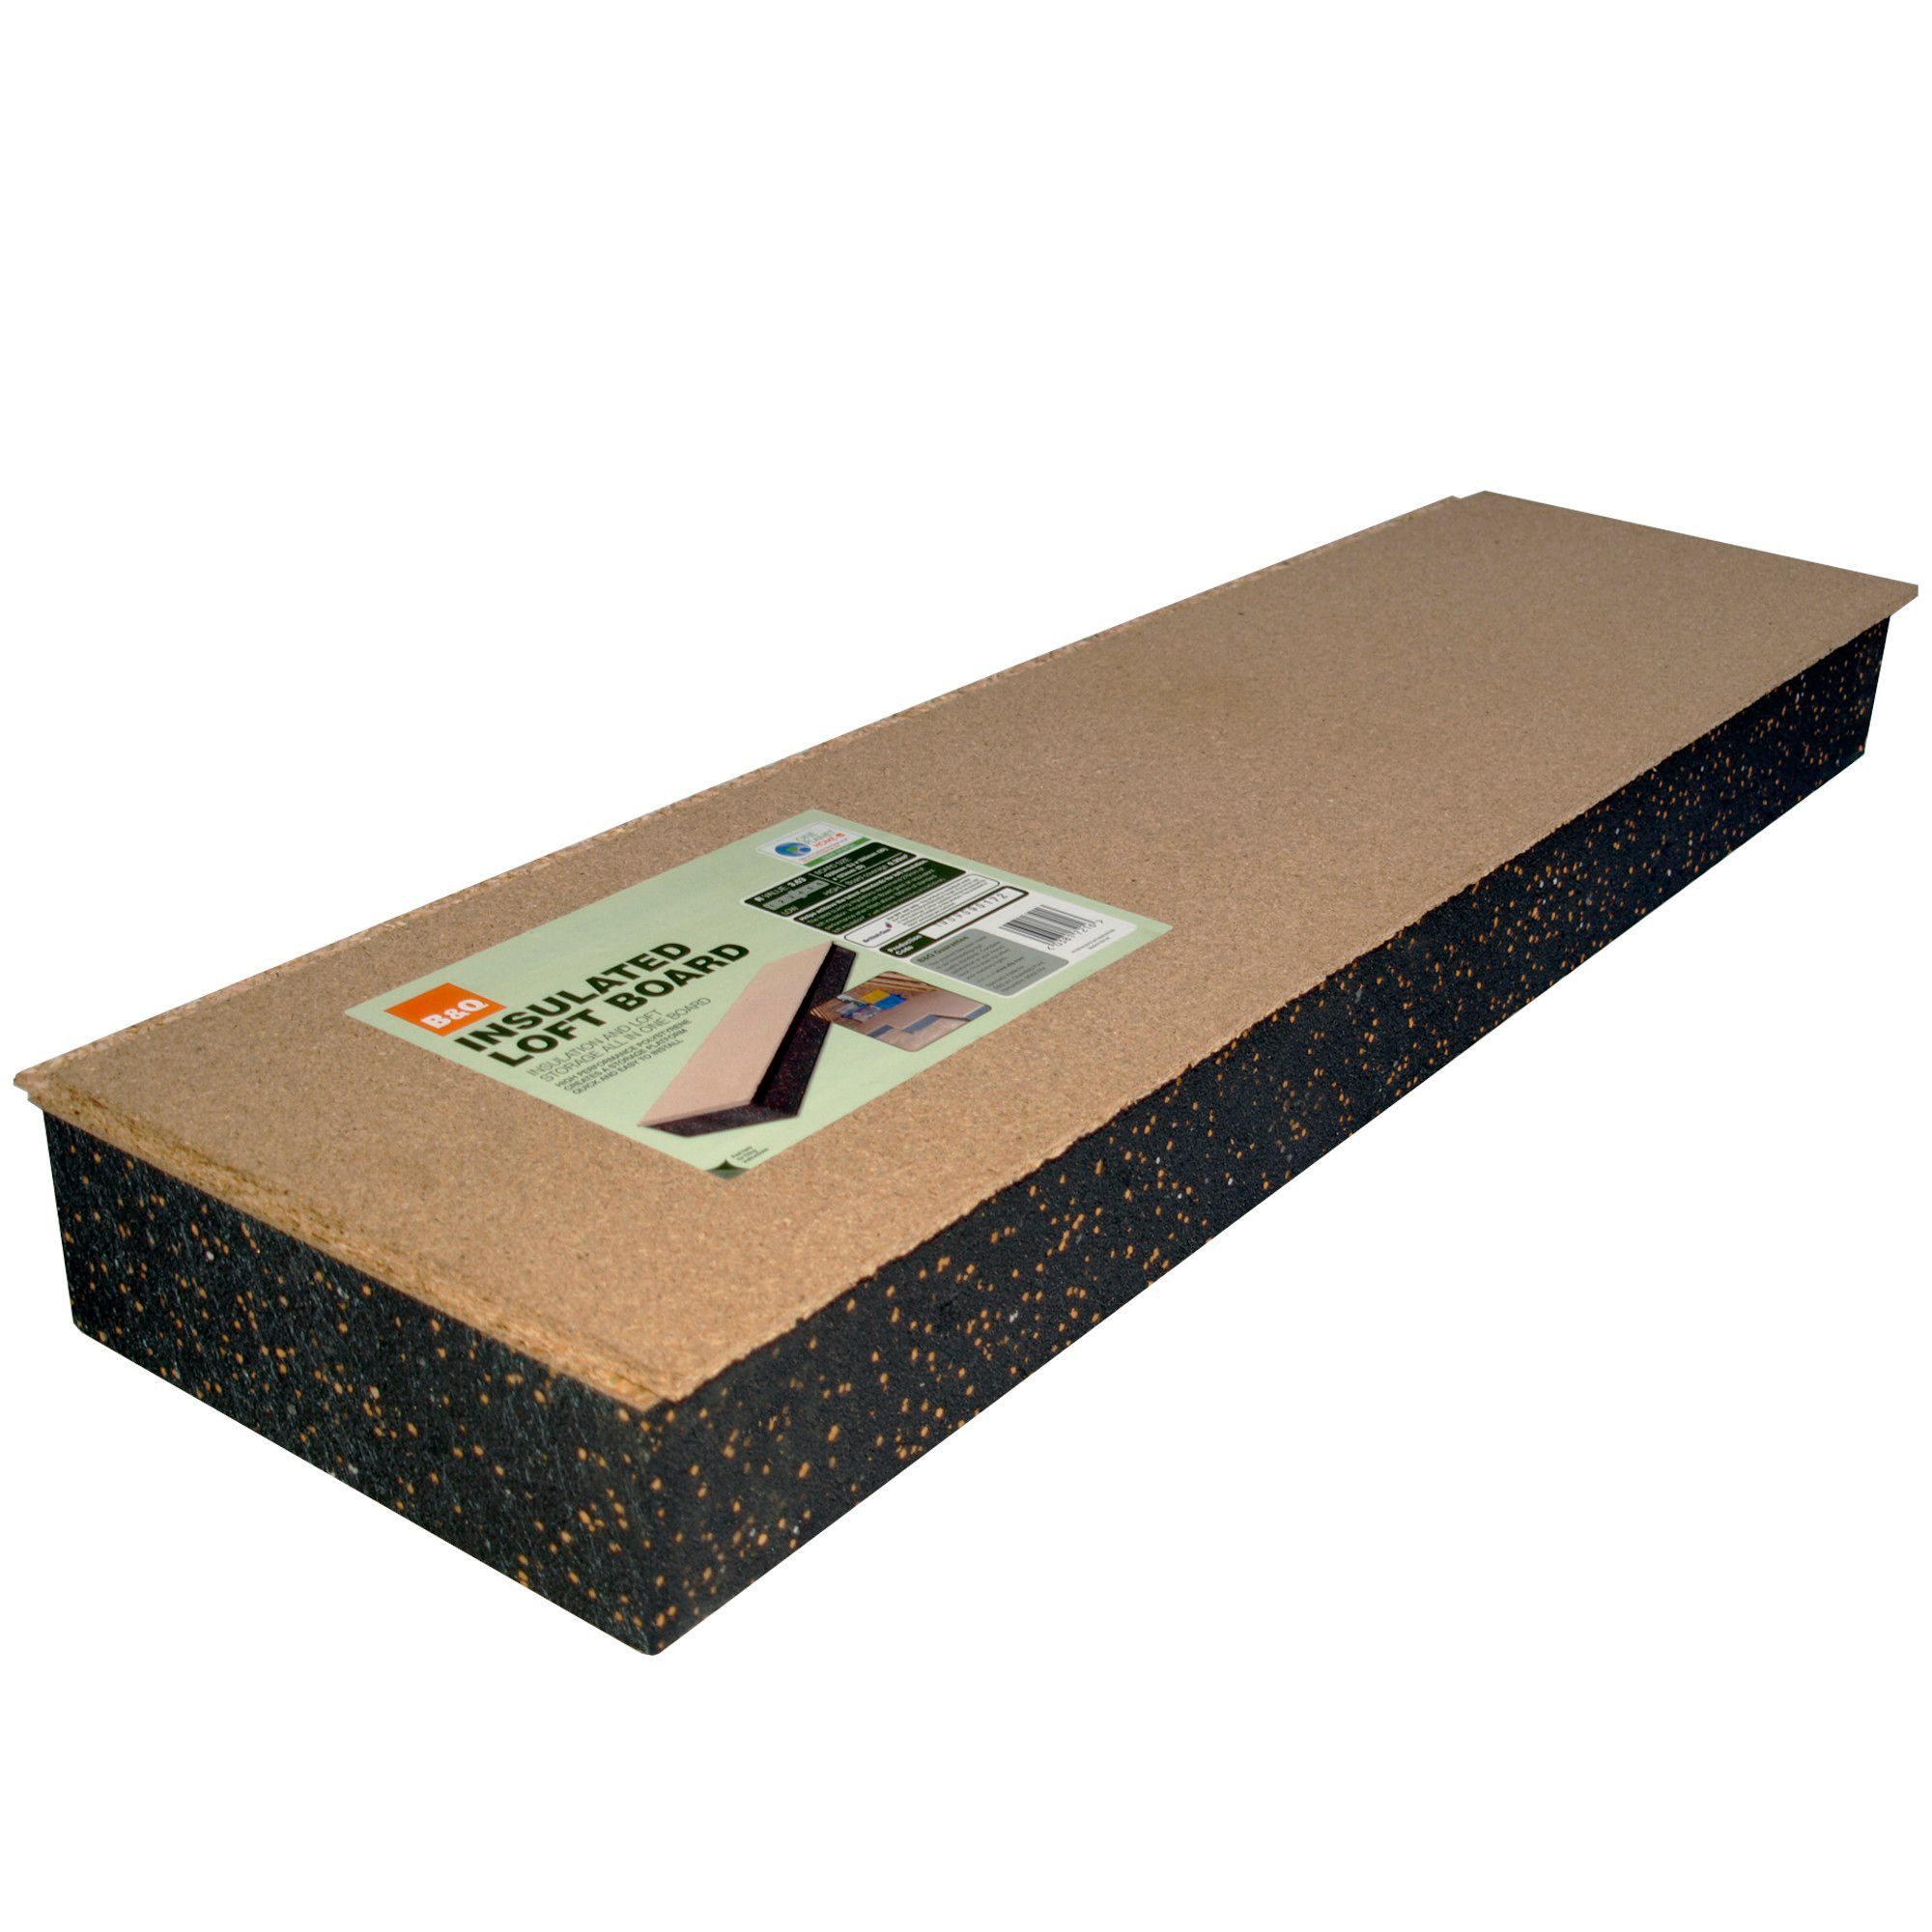 B Amp Q Insulation Board 1220mm 320mm 123mm Departments